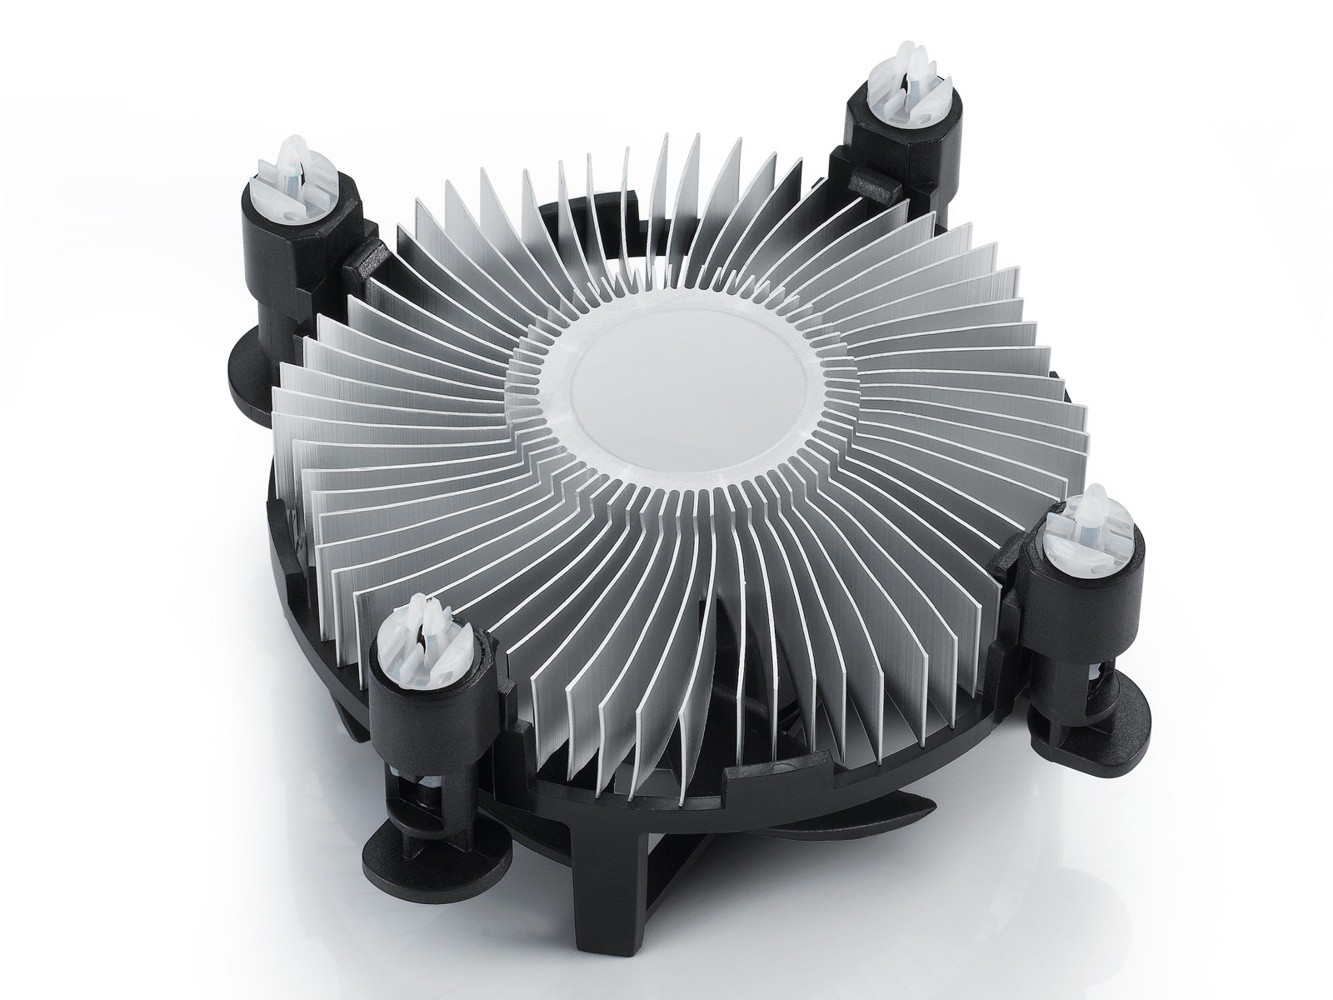 Вентилятор DeepCool CK-11509 PWM (2200rpm, 26.8dB, 38.62 CFM, 4pin, 65W) (Socket 775/1150/1151)